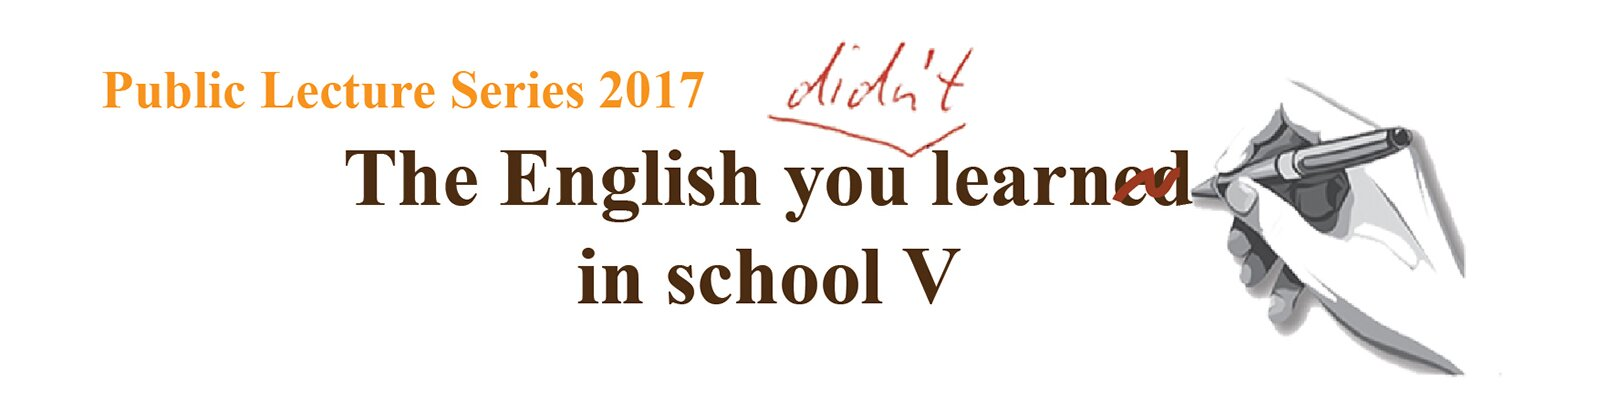 Public Lecture Series 2017 – The English you didn't learn in School V: English spelling really does make sense